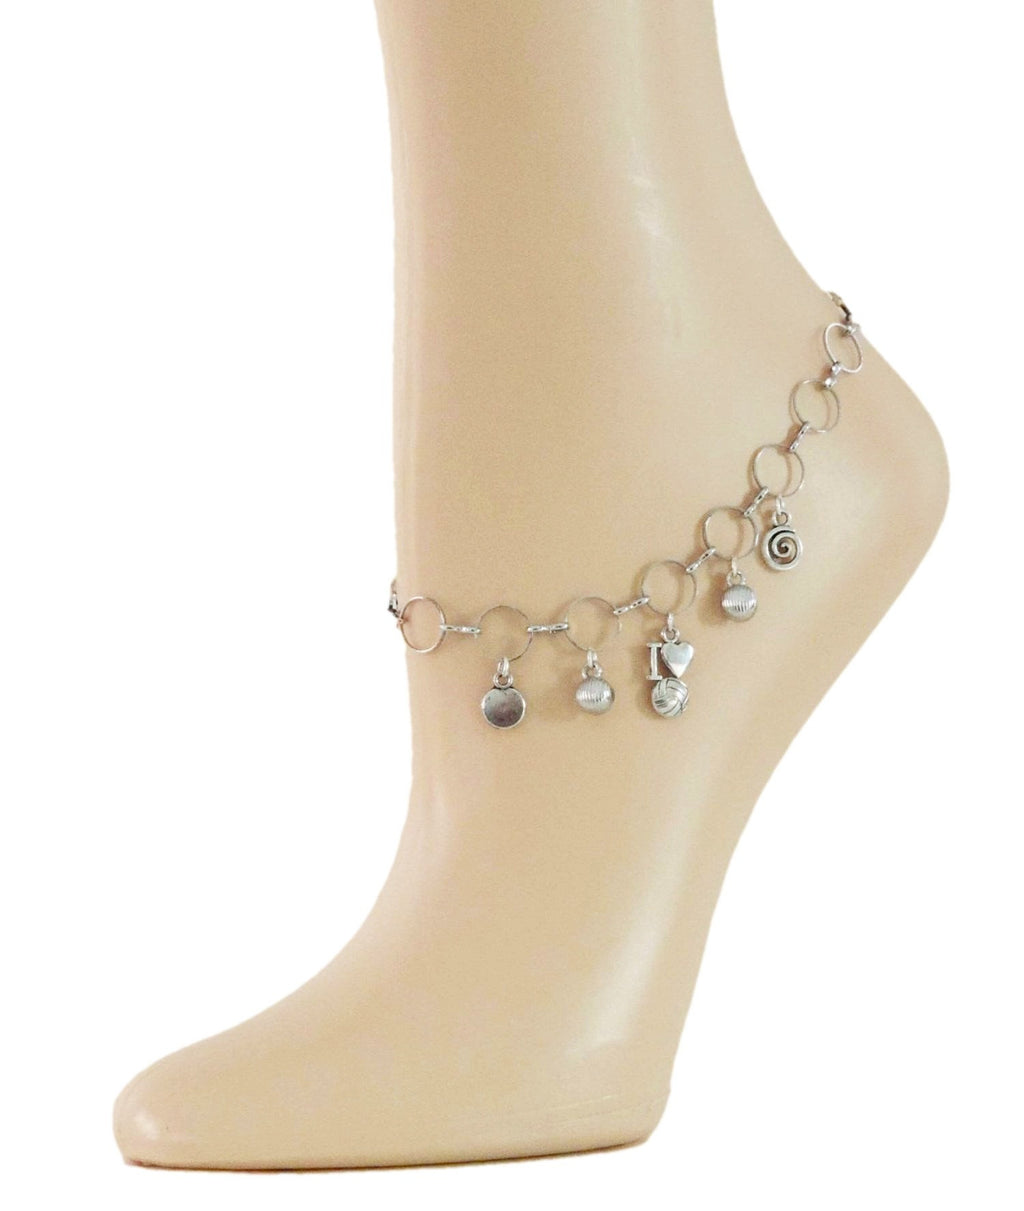 DIY Gabriella Anklet - Global Trendz Fashion®